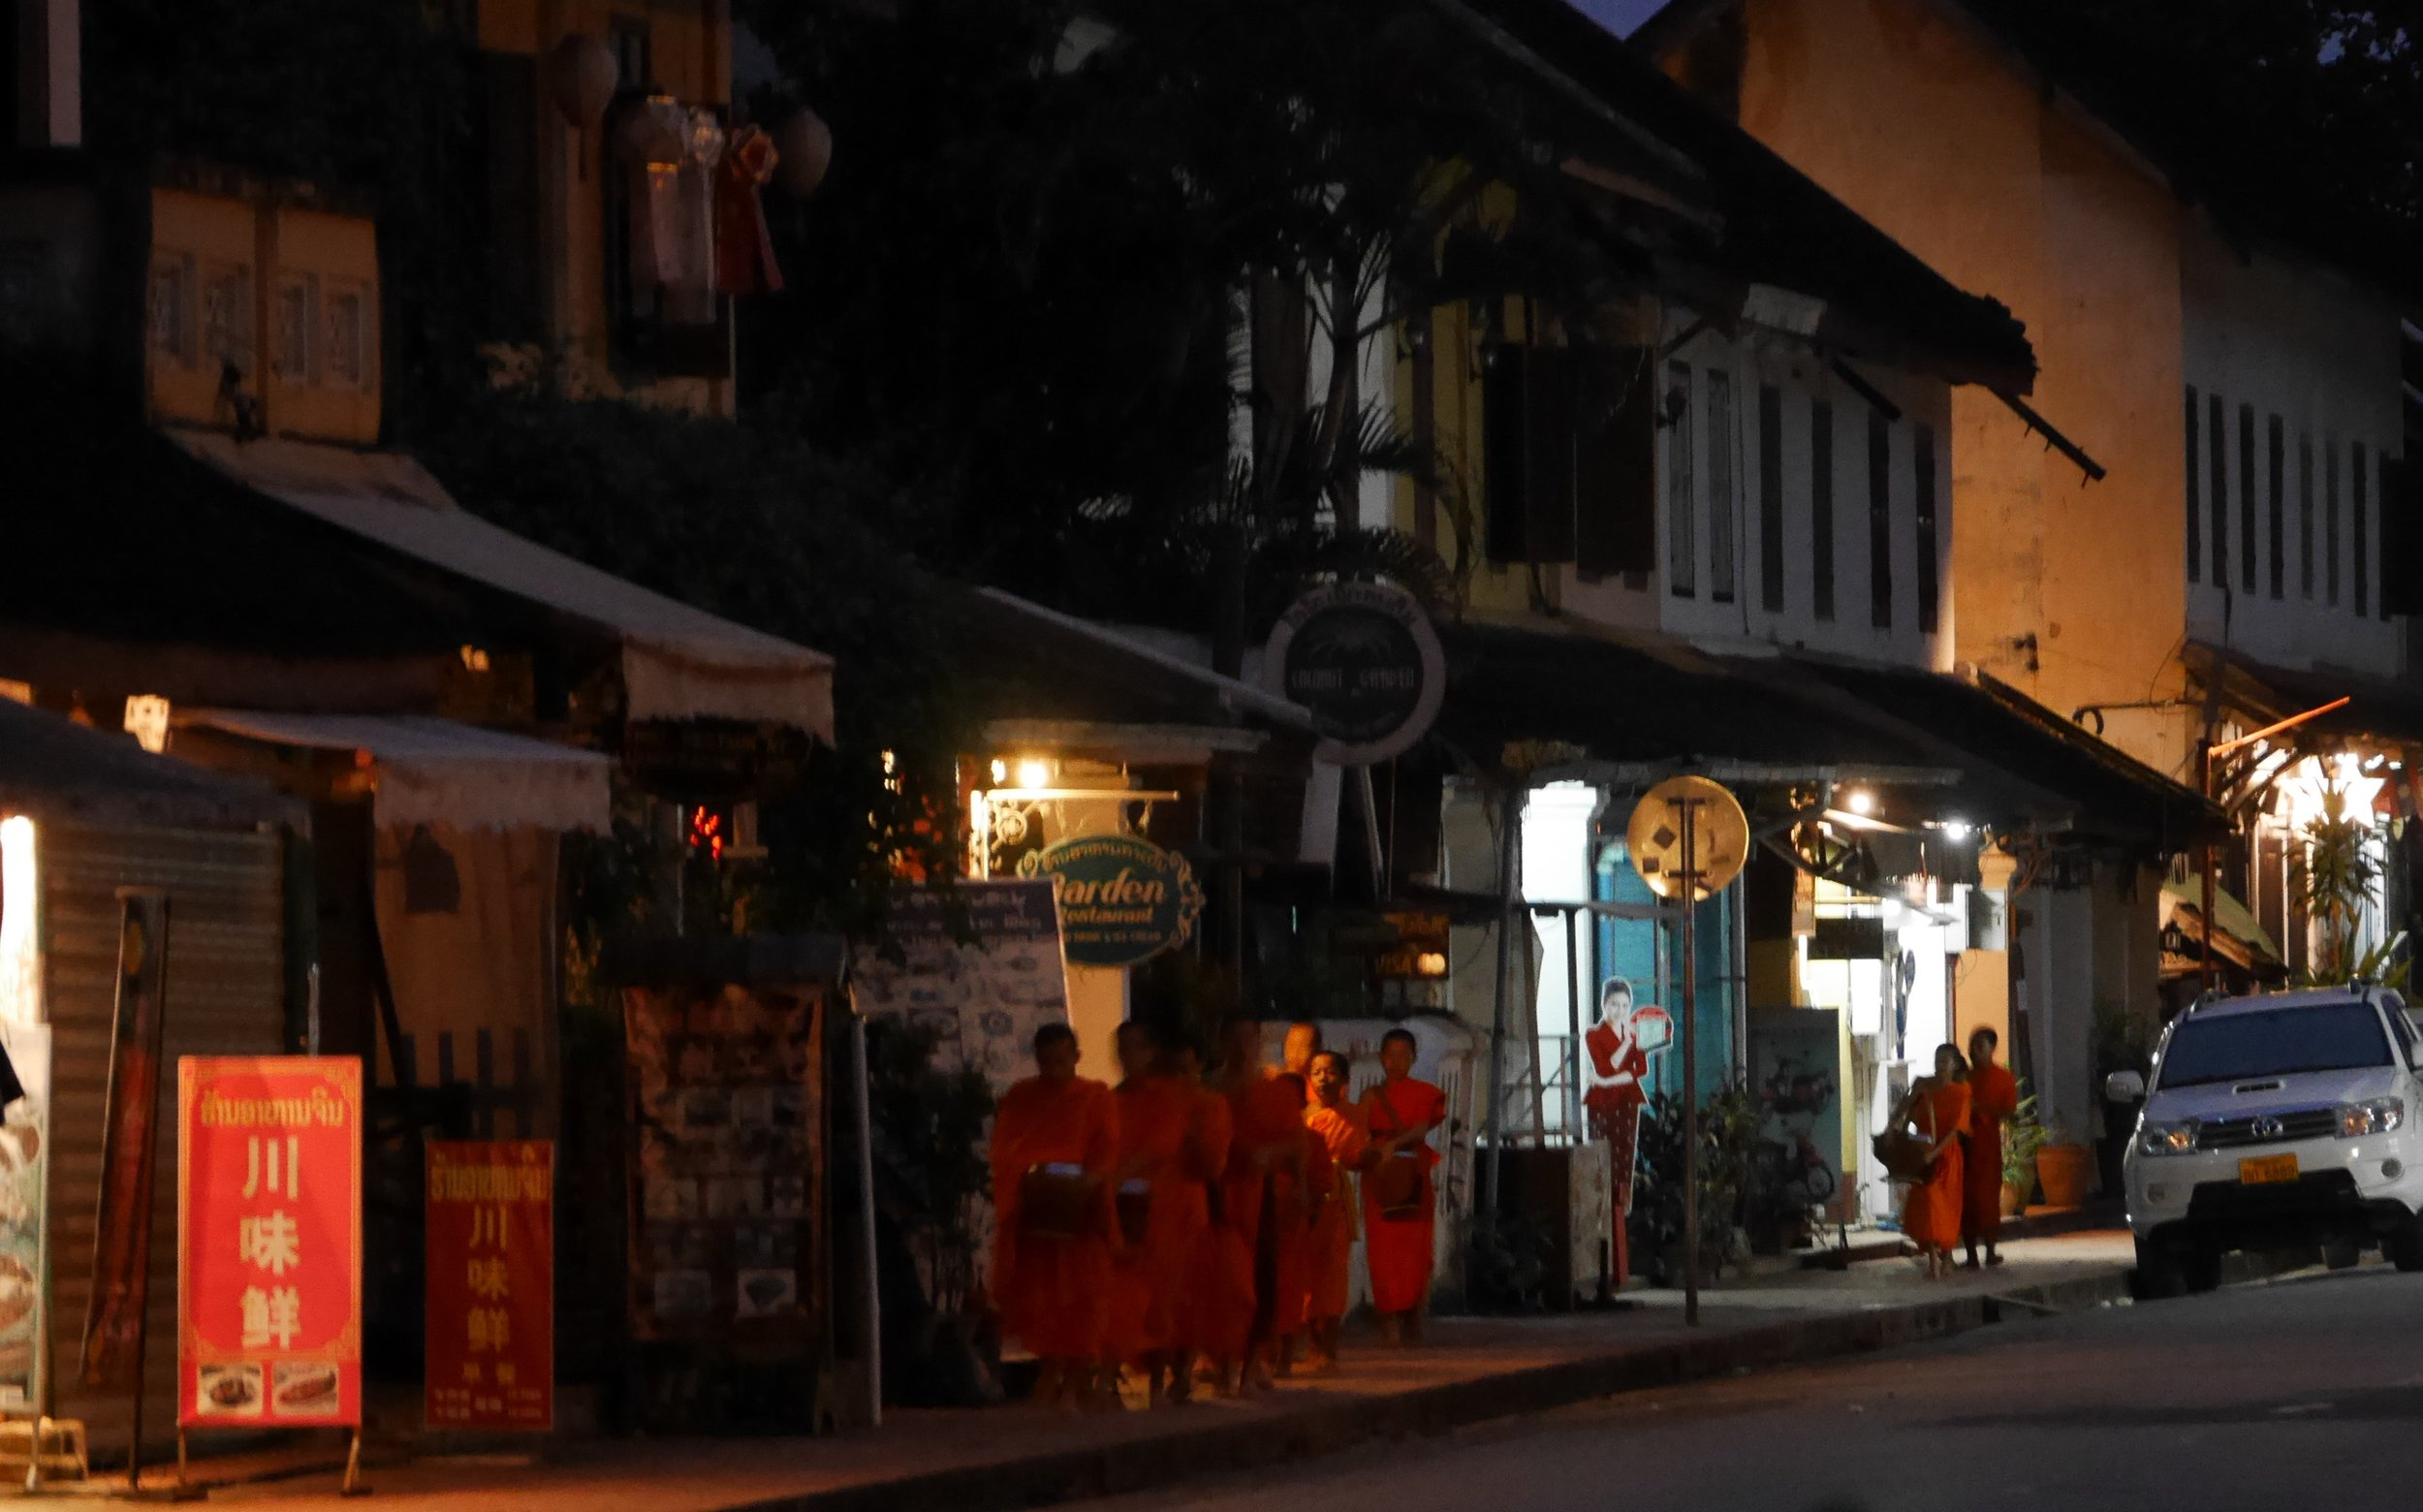 the morning alms giving ceremony begins before first light in Luang Prabang